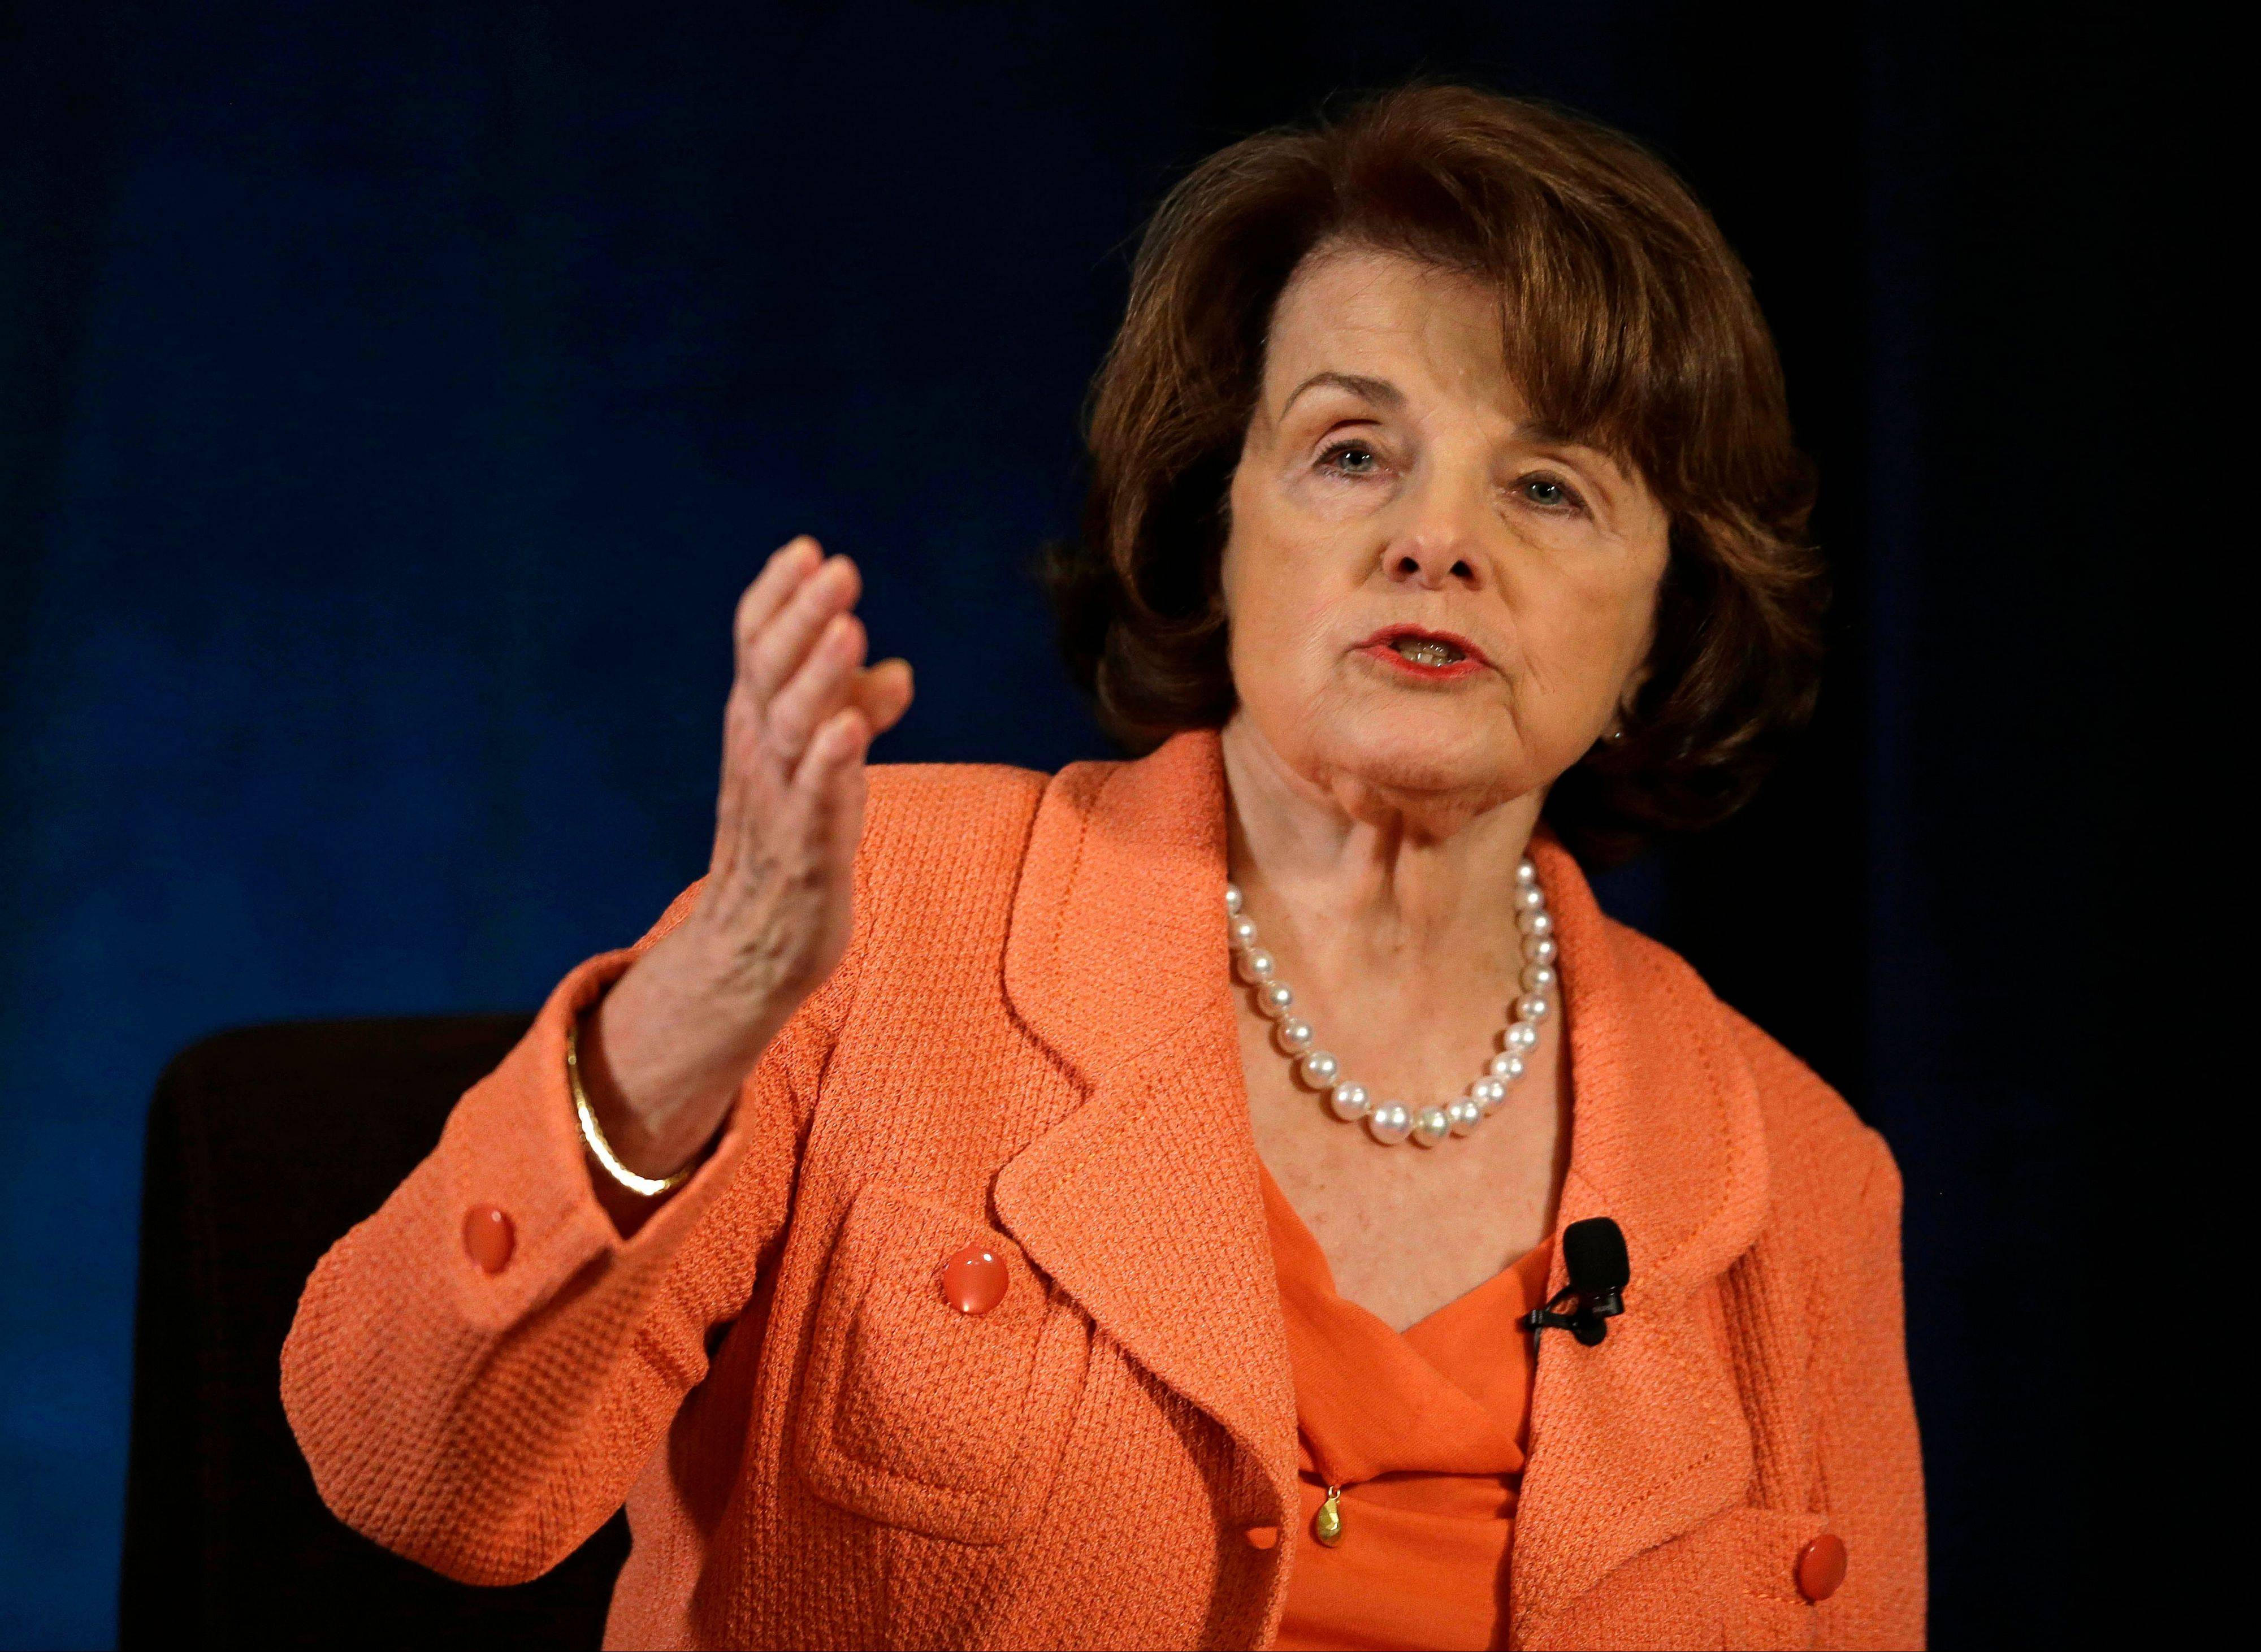 Sen. Dianne Feinstein, who chairs the Senate Intelligence Committee, said President Obama's plan to require a special judge's advance approval before intelligence agencies can examine someone's data, won't work.